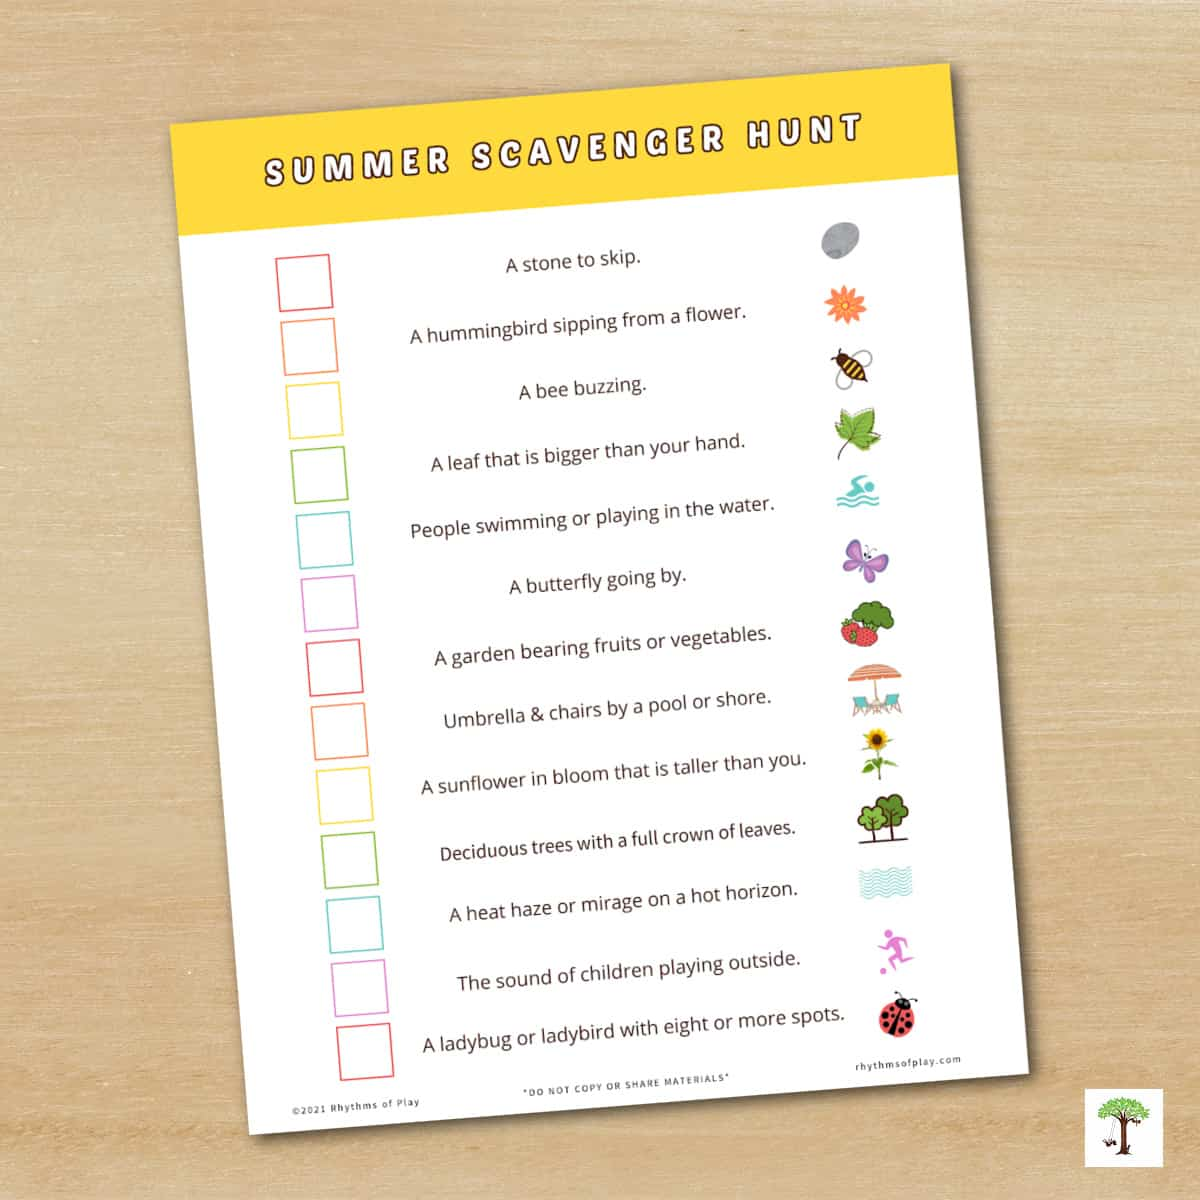 Summer nature scavenger hunt idea for toddlers, preschoolers, and up